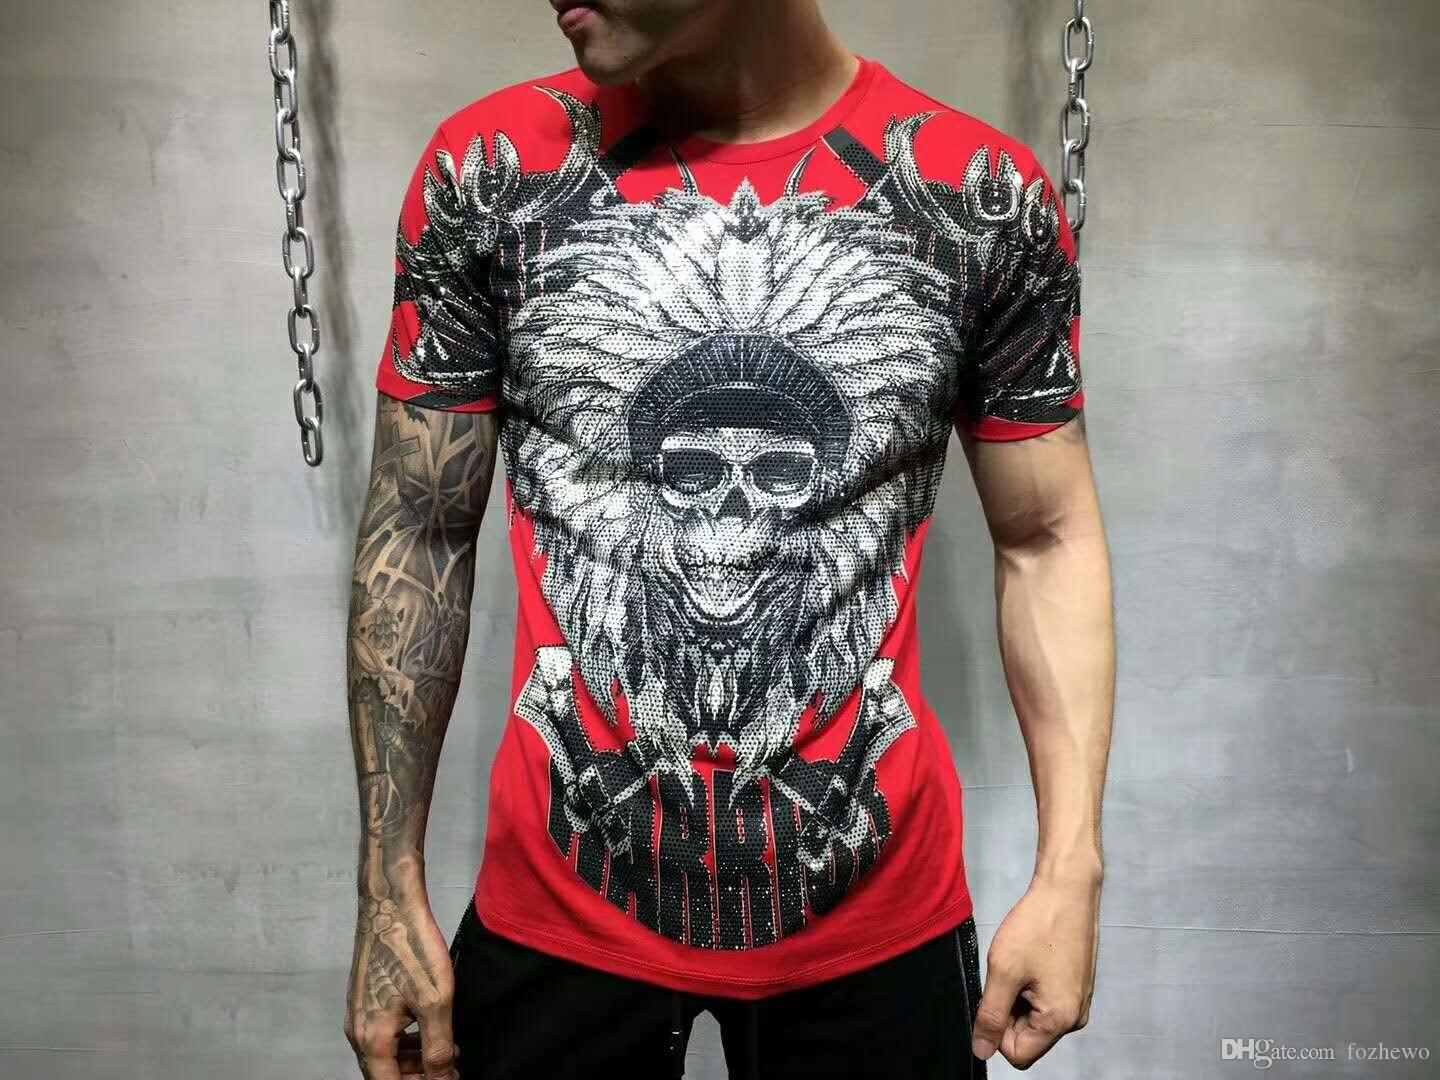 My Brand Men's Tiger Sport Printed T-Shirt Summer Men's Hip Hop Casual Cotton Tees Shirts Fashion Skateboards Streetwear Tshirts